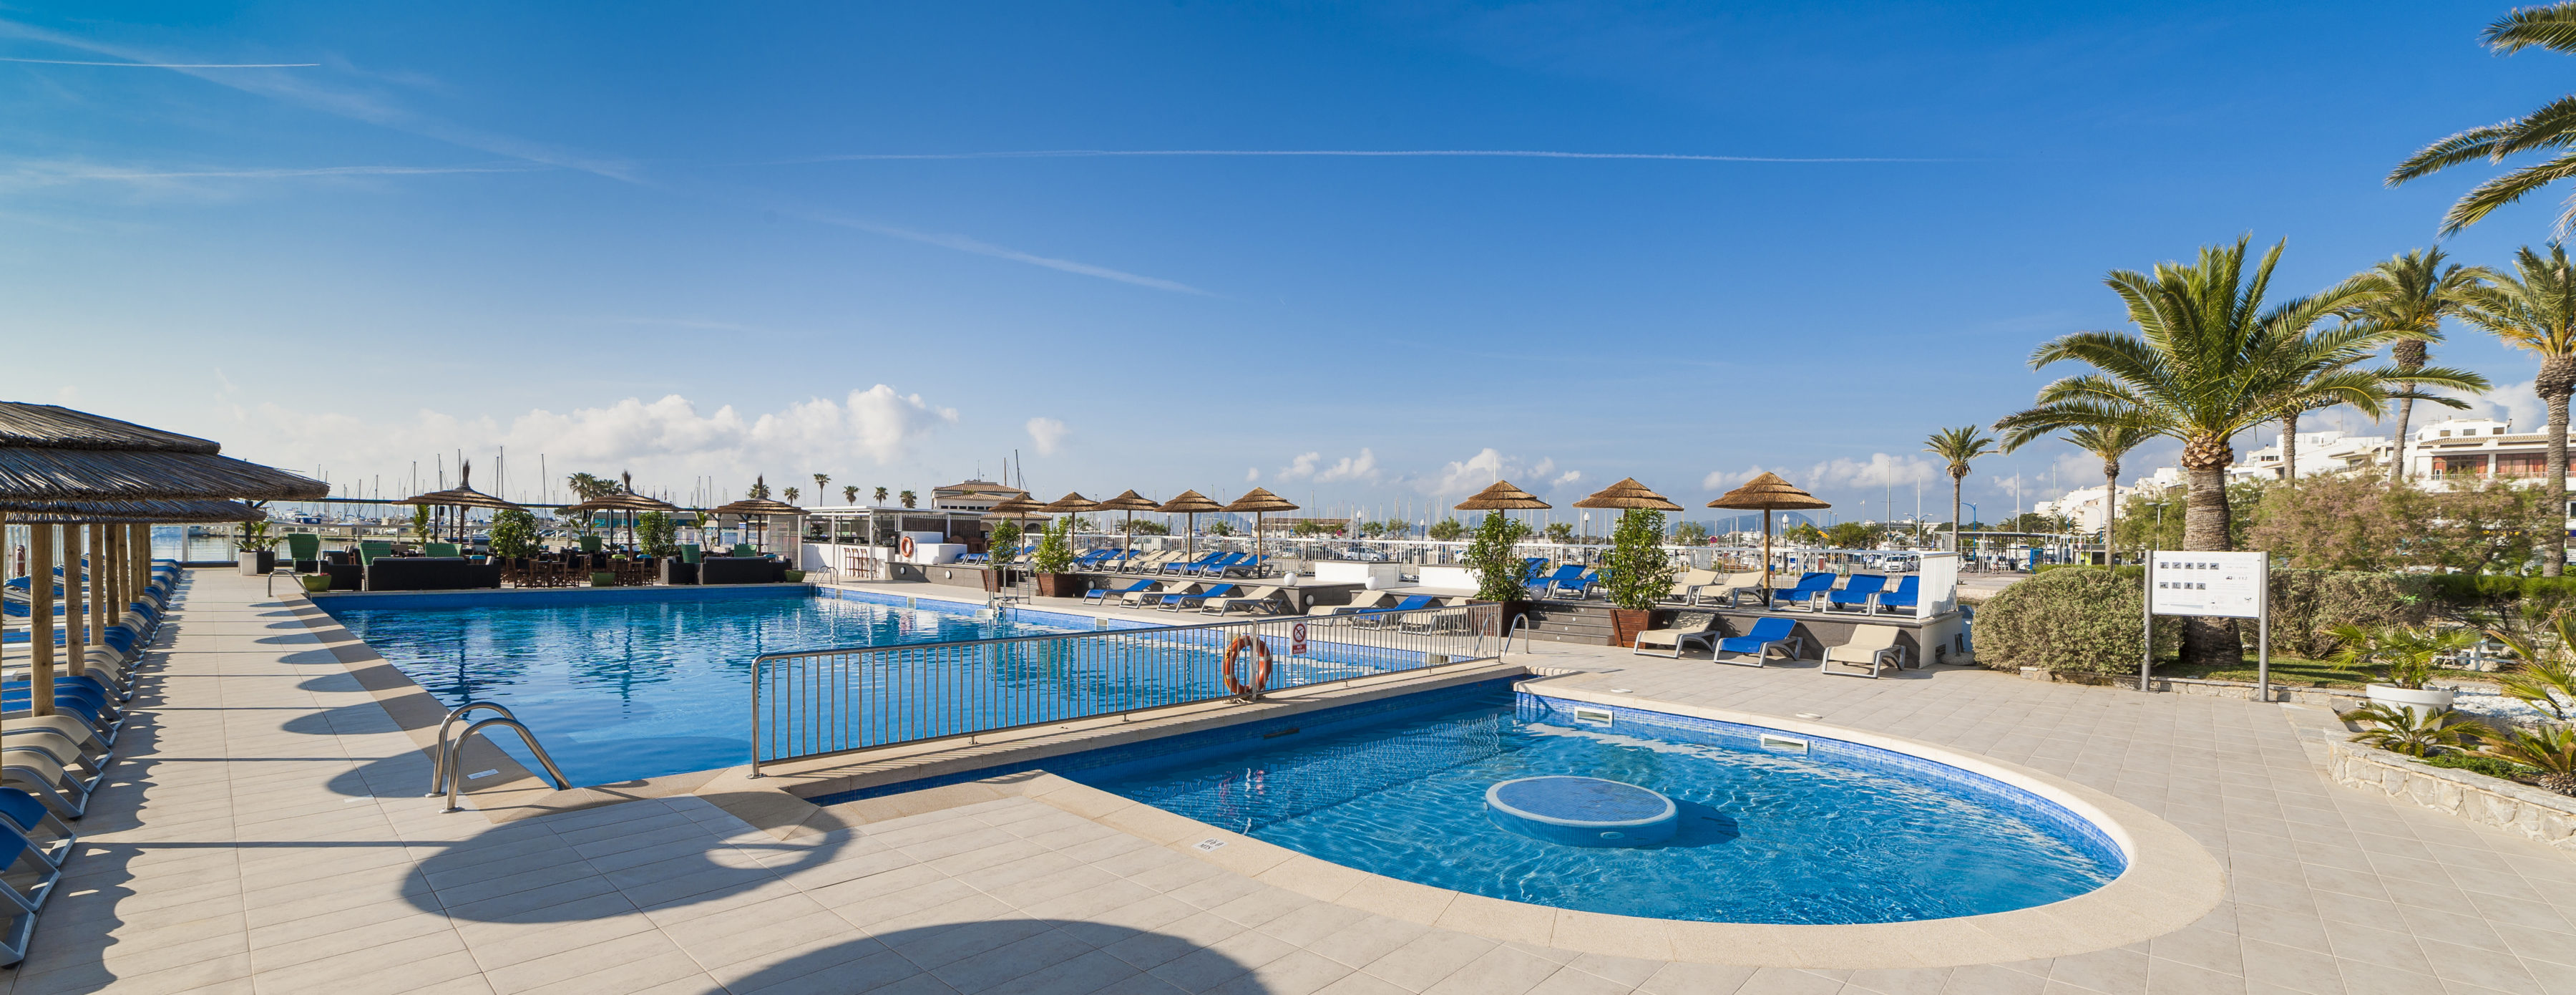 Swimming Pool Apartments Hoposa Daina